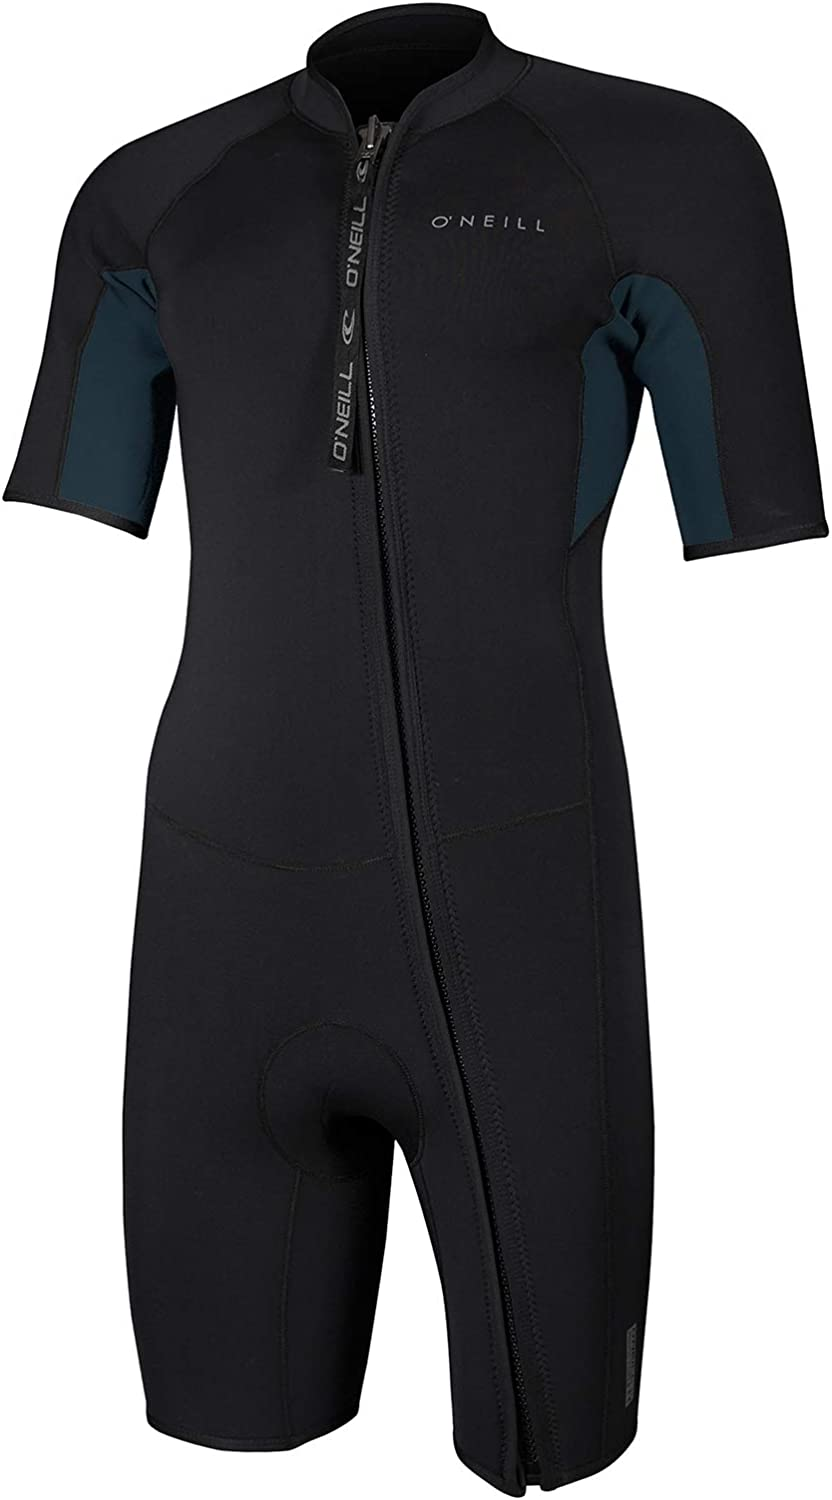 O'NEILL Reactor-2 Mens Front Zip Shorty 3mm Neoprene Spring Wetsuit